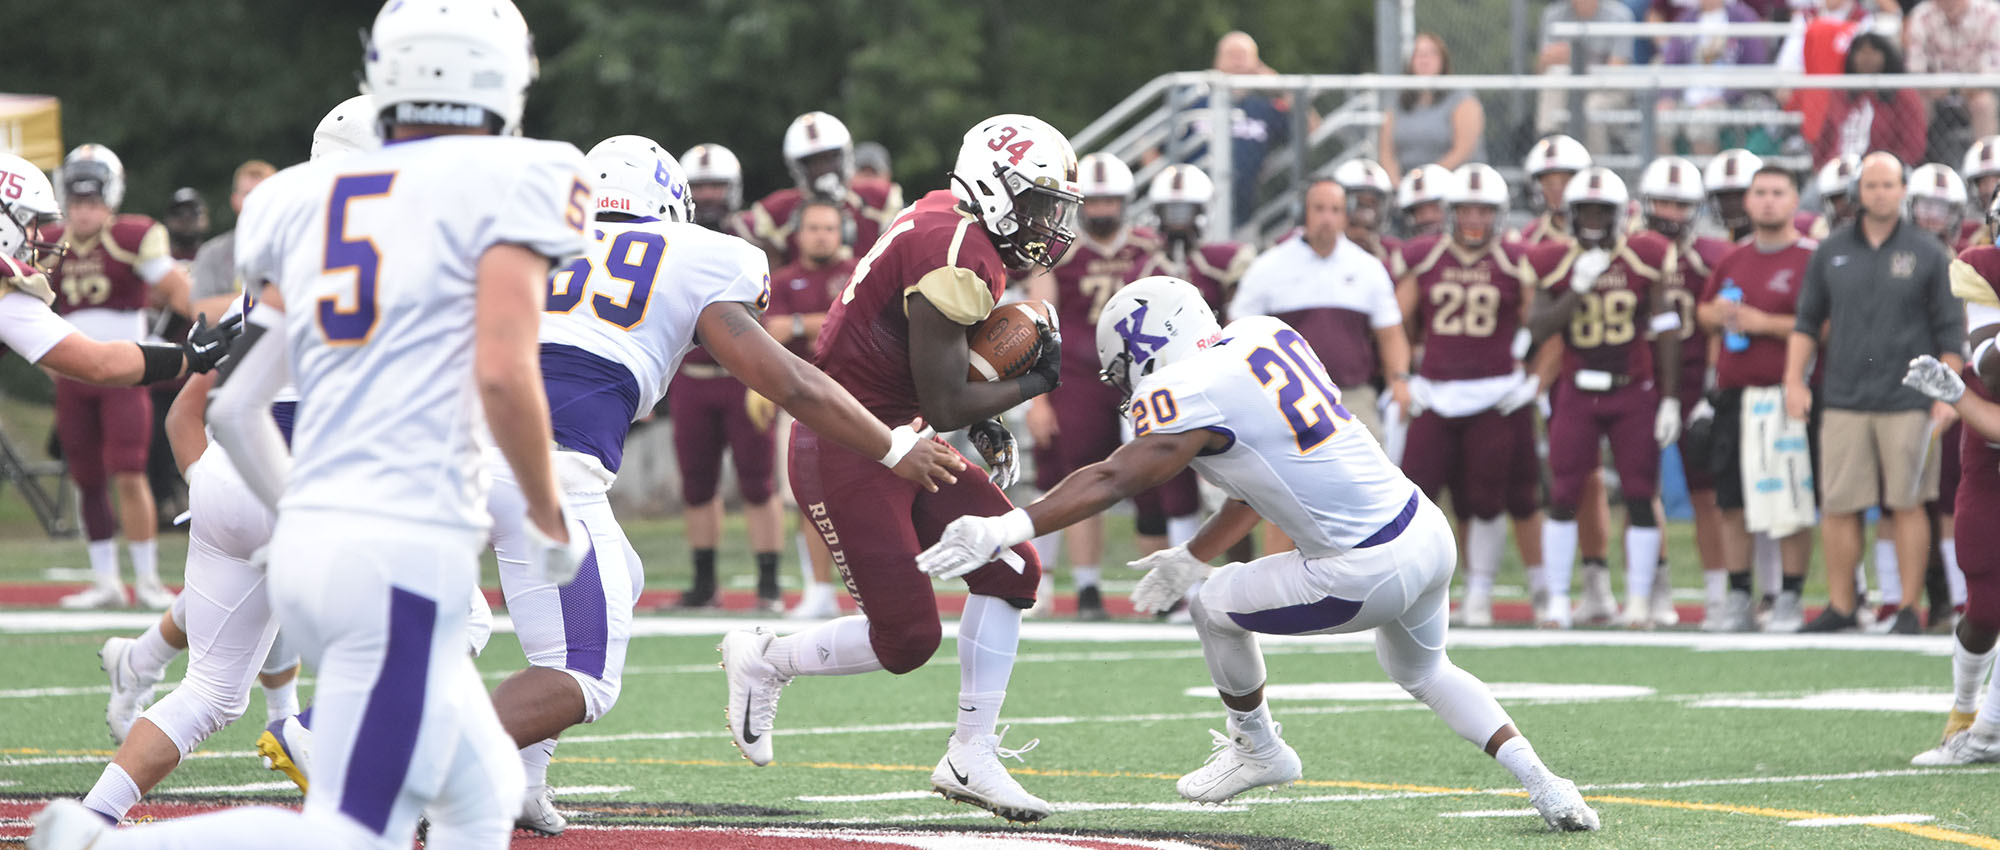 Eureka Edges Wisconsin Lutheran in OT for First NACC Win, 26-20